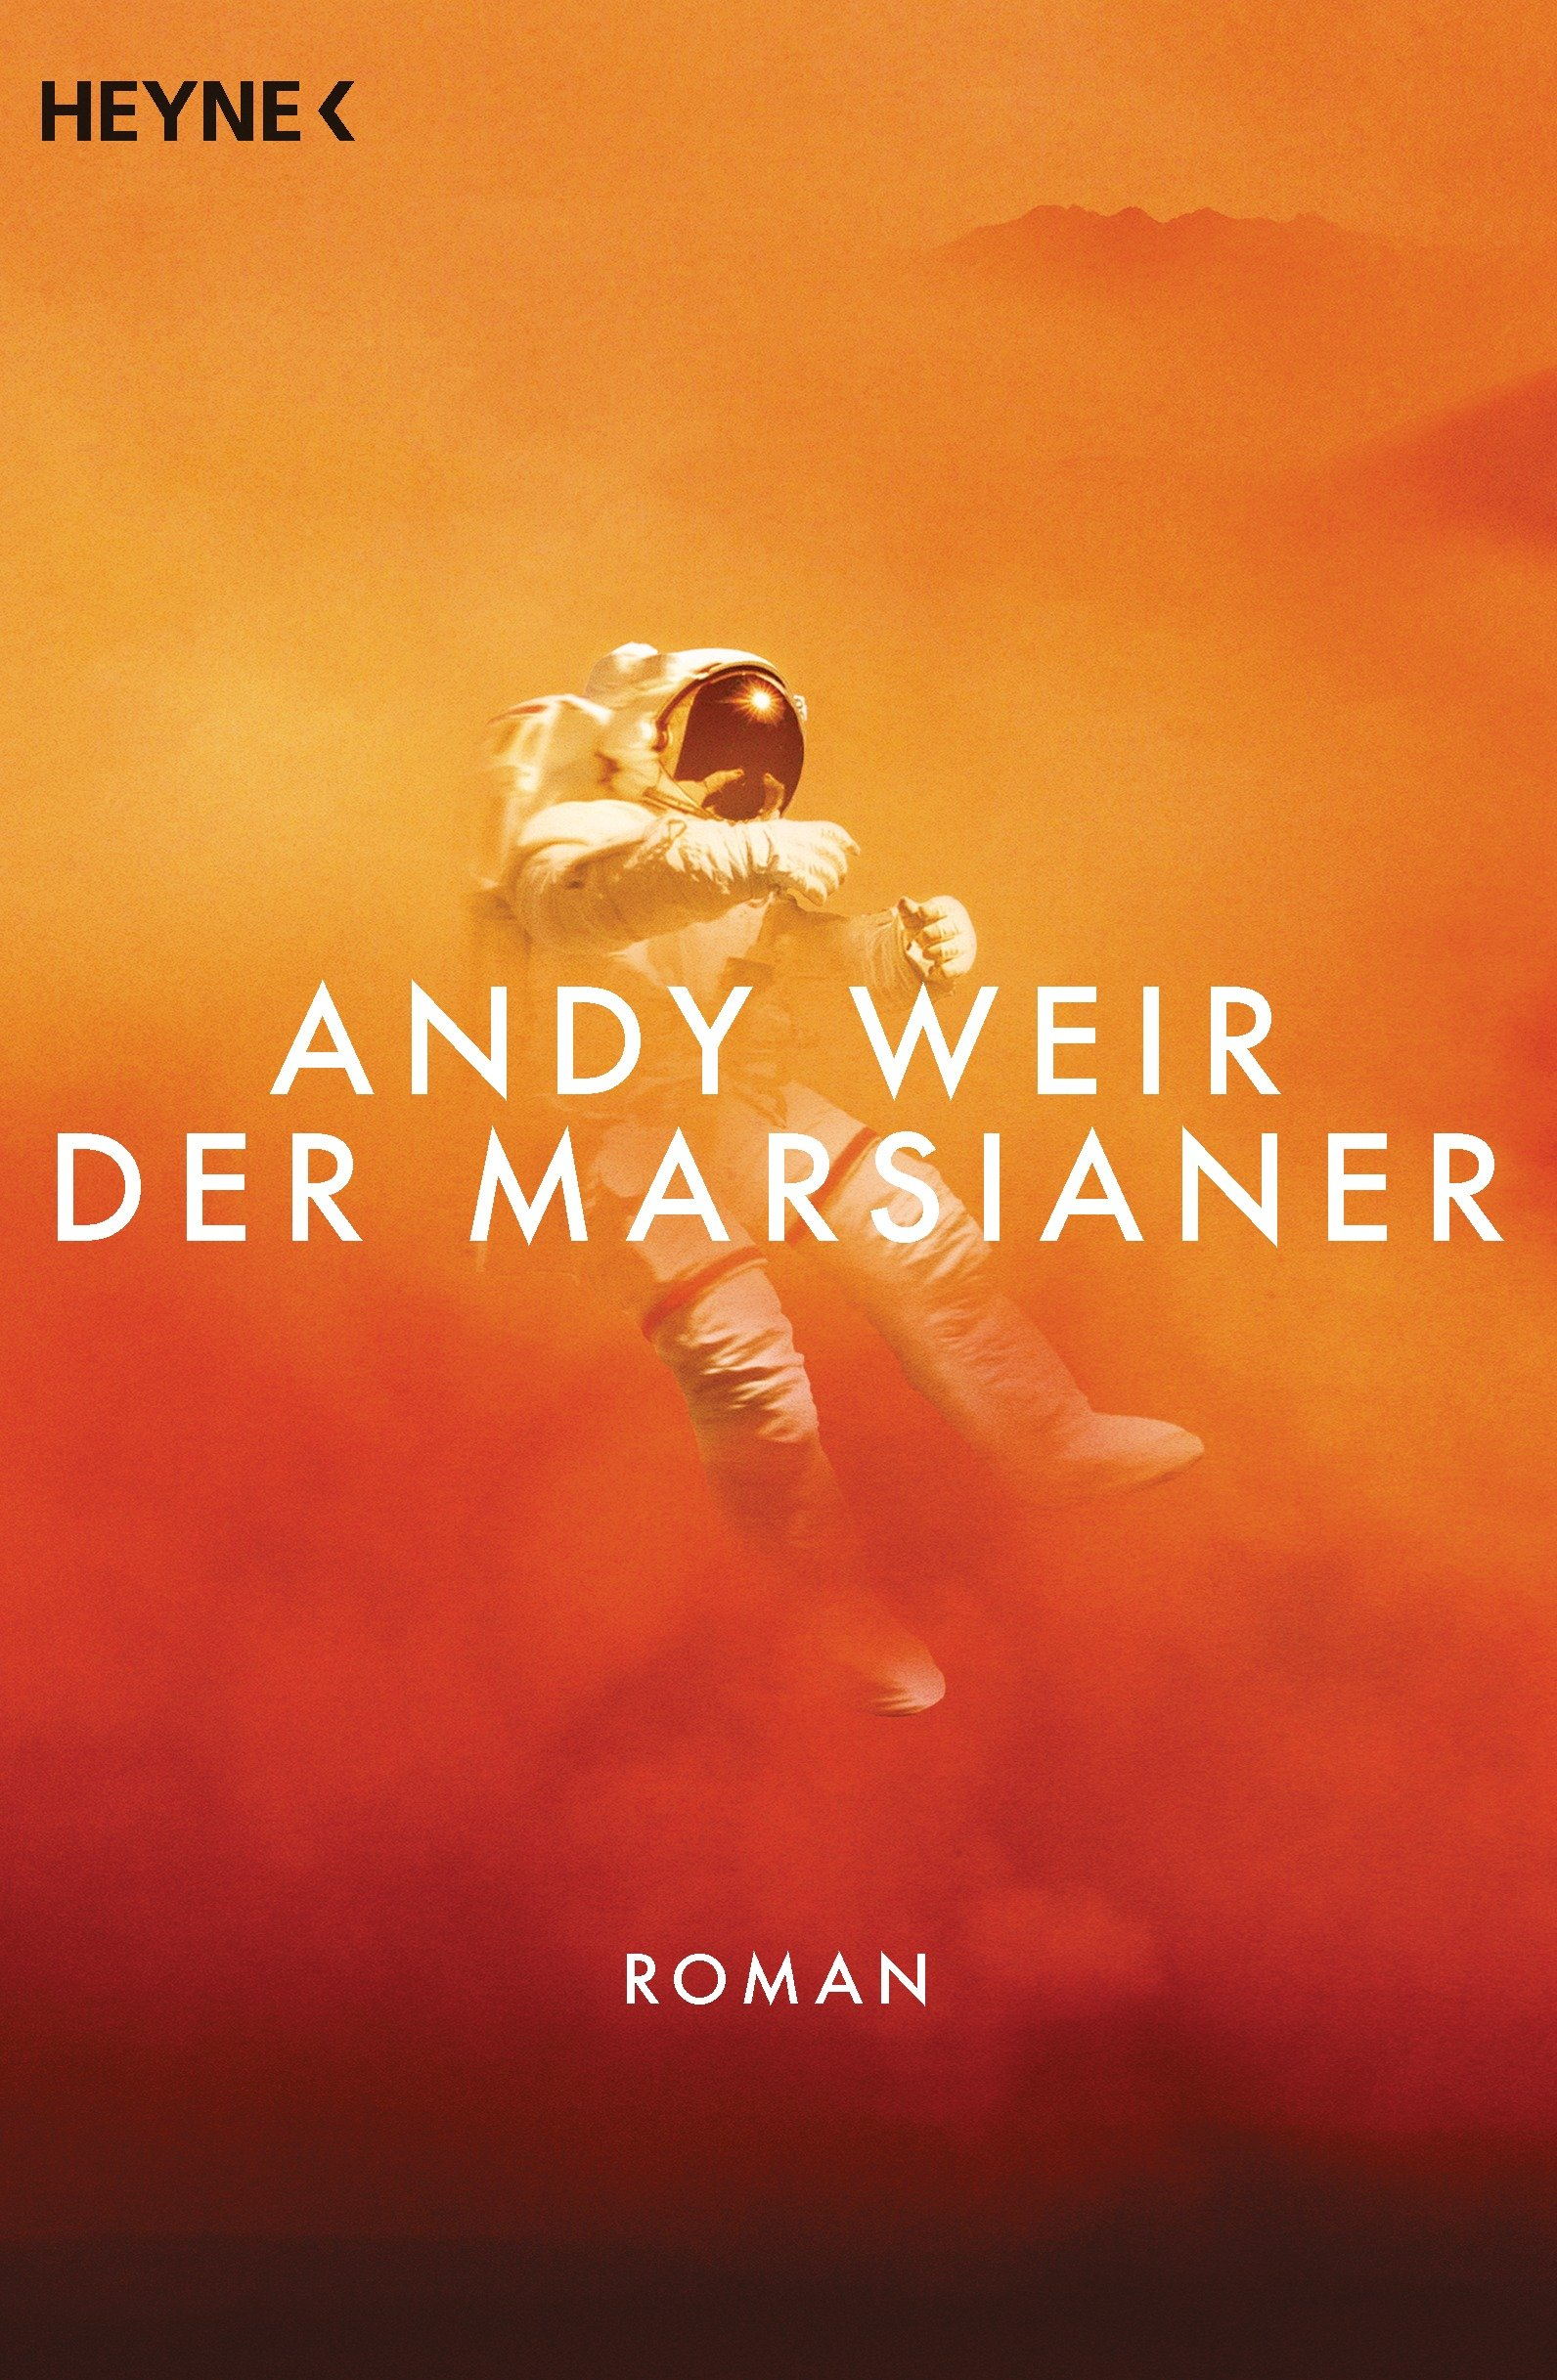 http://ilys-buecherblog.blogspot.de/2015/11/rezension-der-marsianer-rettet-mark.html